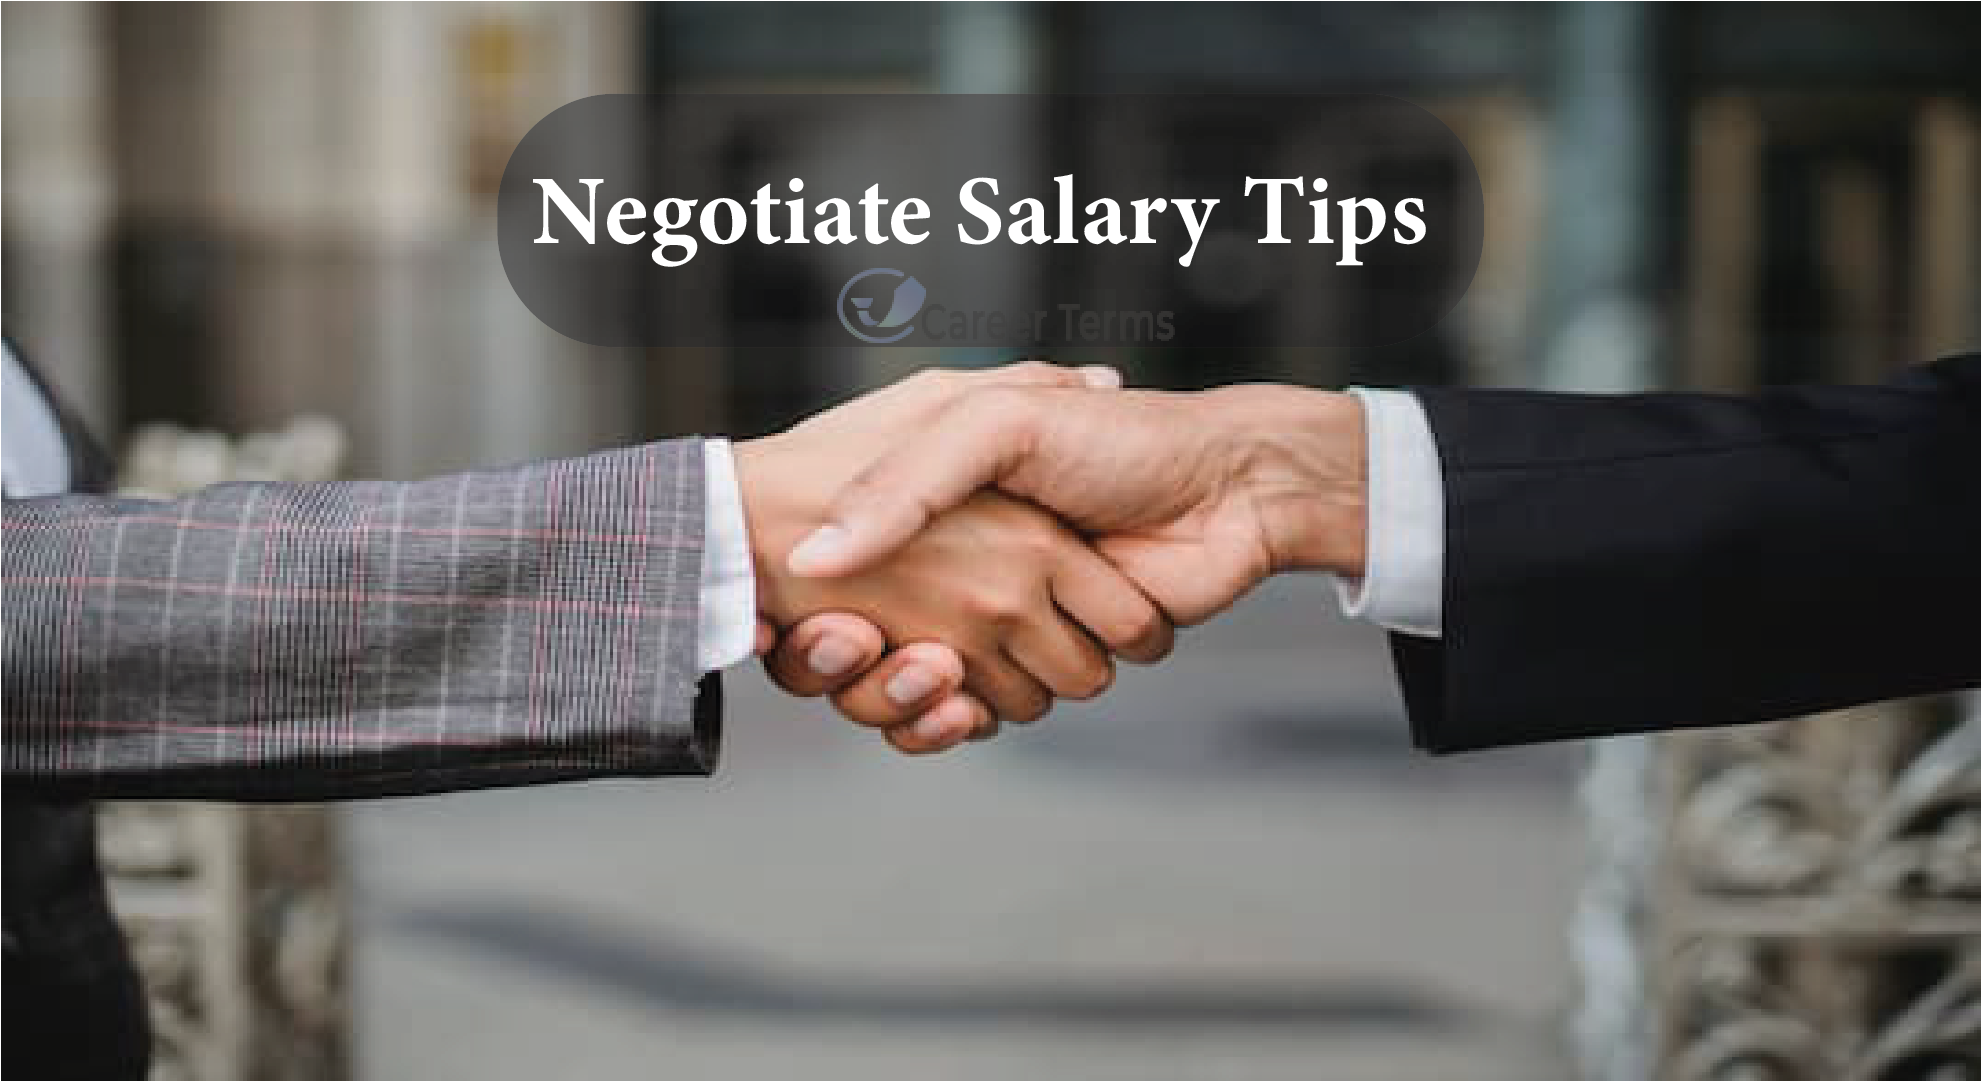 How to Negotiate Salary Tips